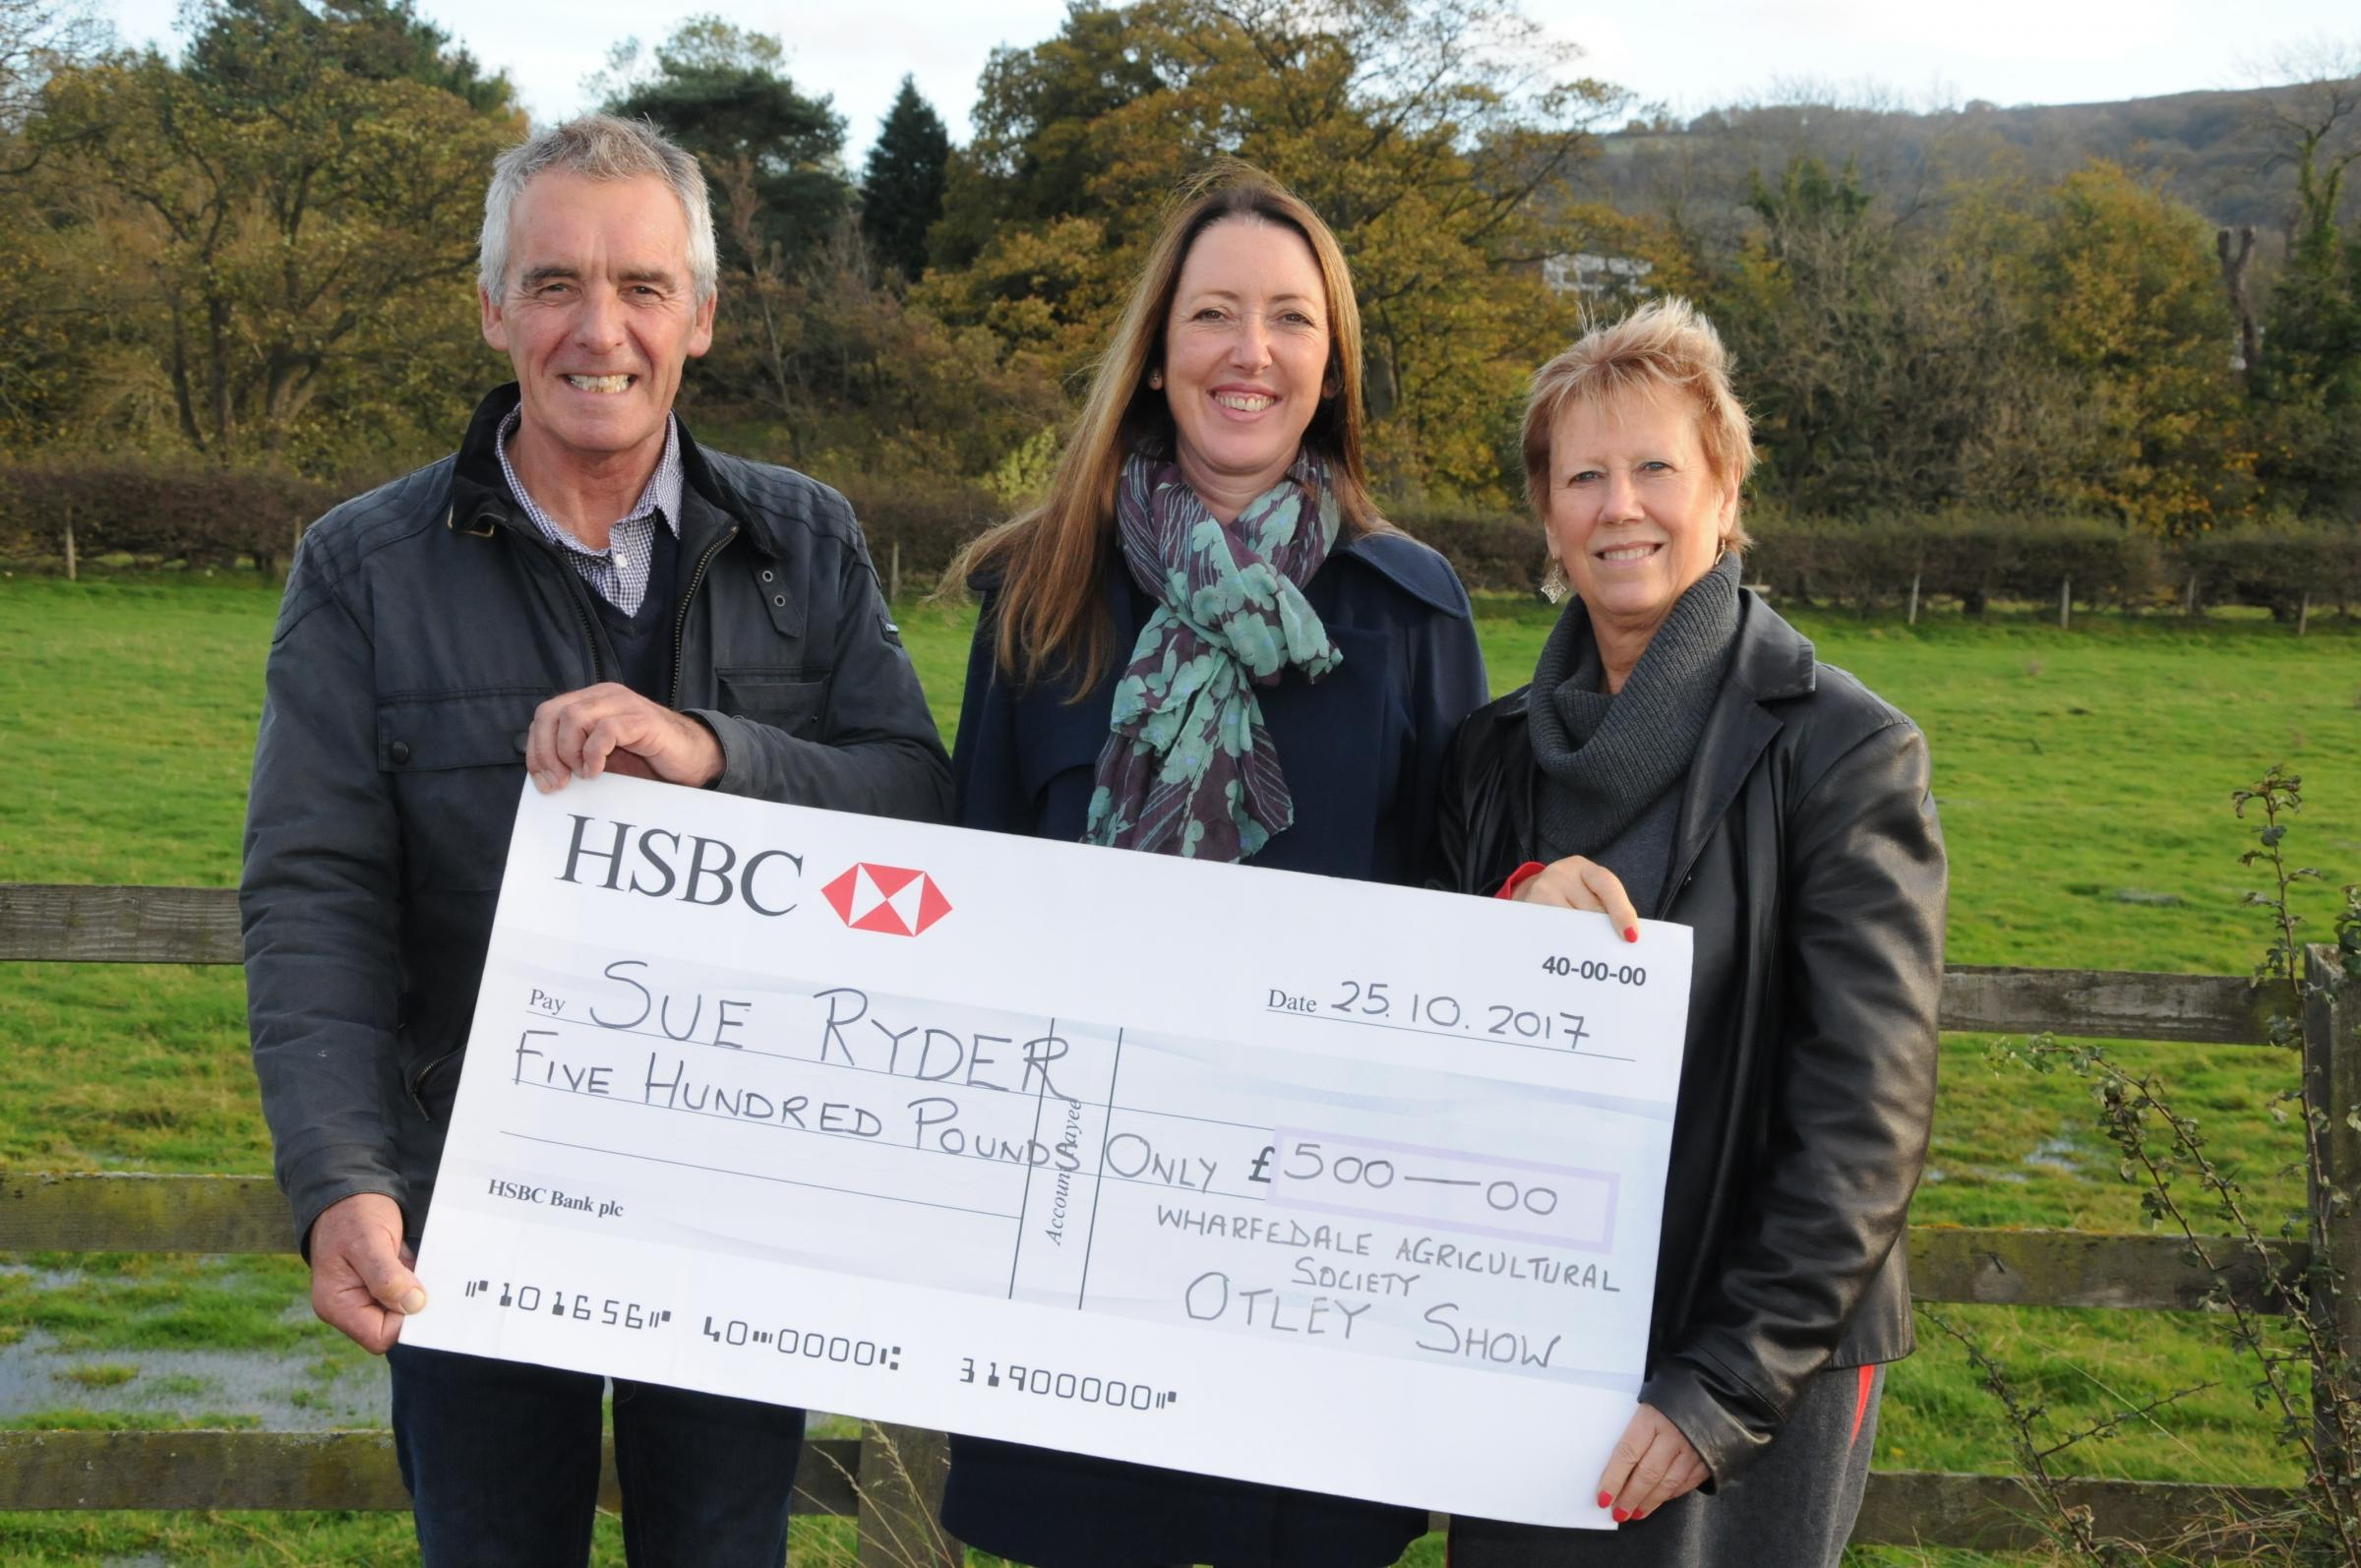 Richard Houldsworth of Basil Houldsworth and Sons and Otley Show Secretary Janet Raw presenting Kirsty Christmas (centre) with a £500 cheque for Sue Ryder Wheatfields Hospice. Photograph by Andrew Beeson.